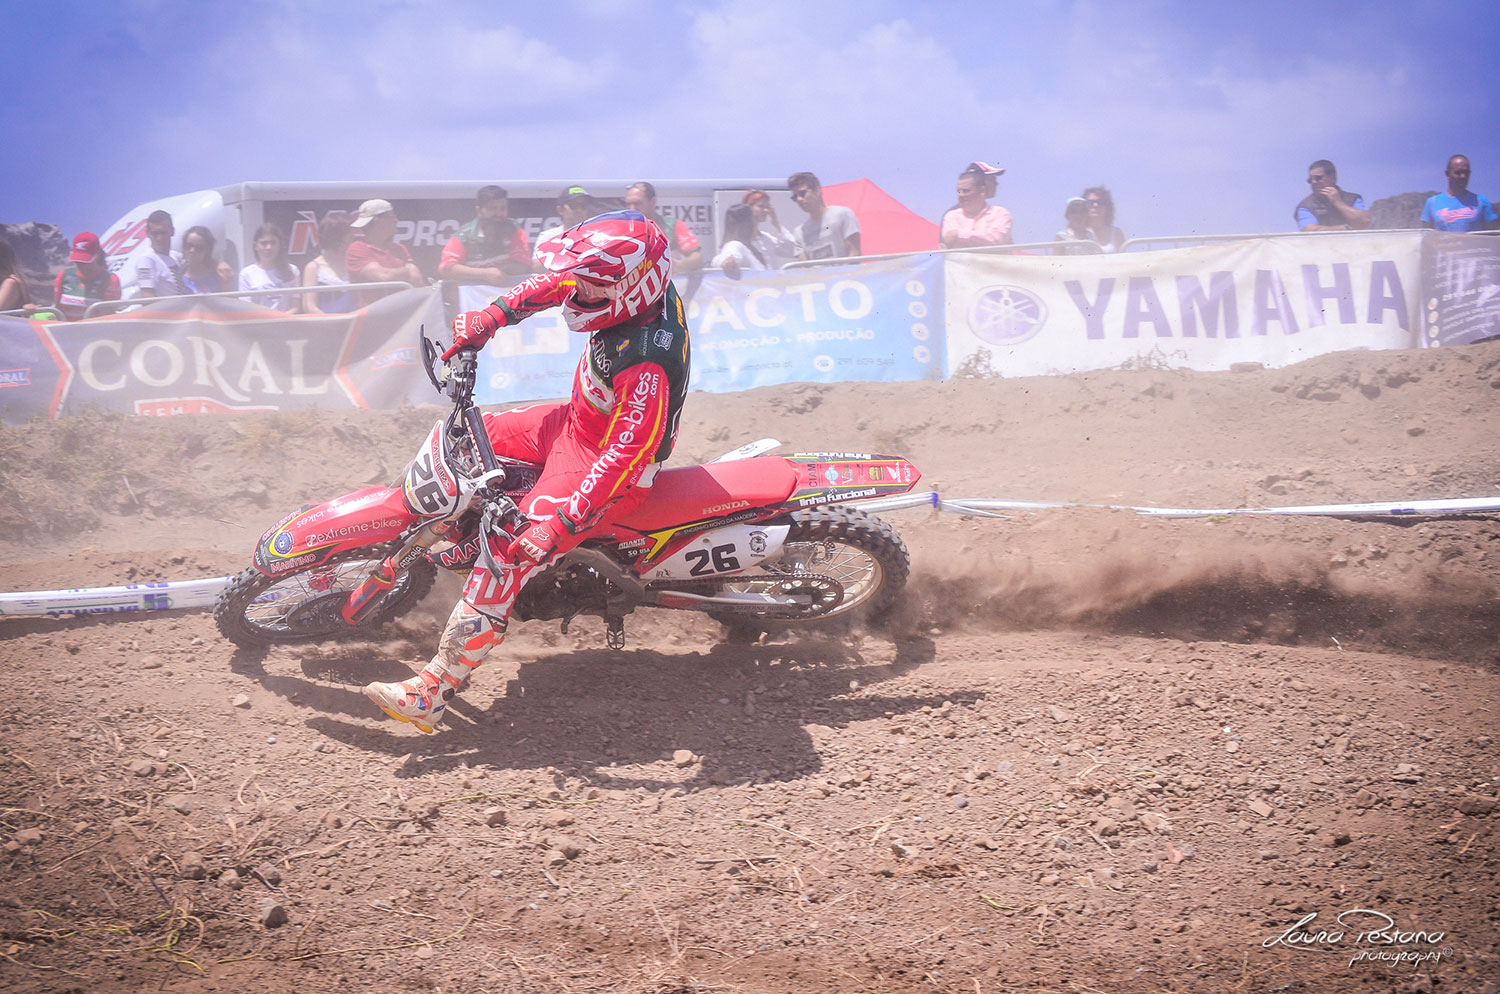 A rider making the berm on his honda crf on a motocross track